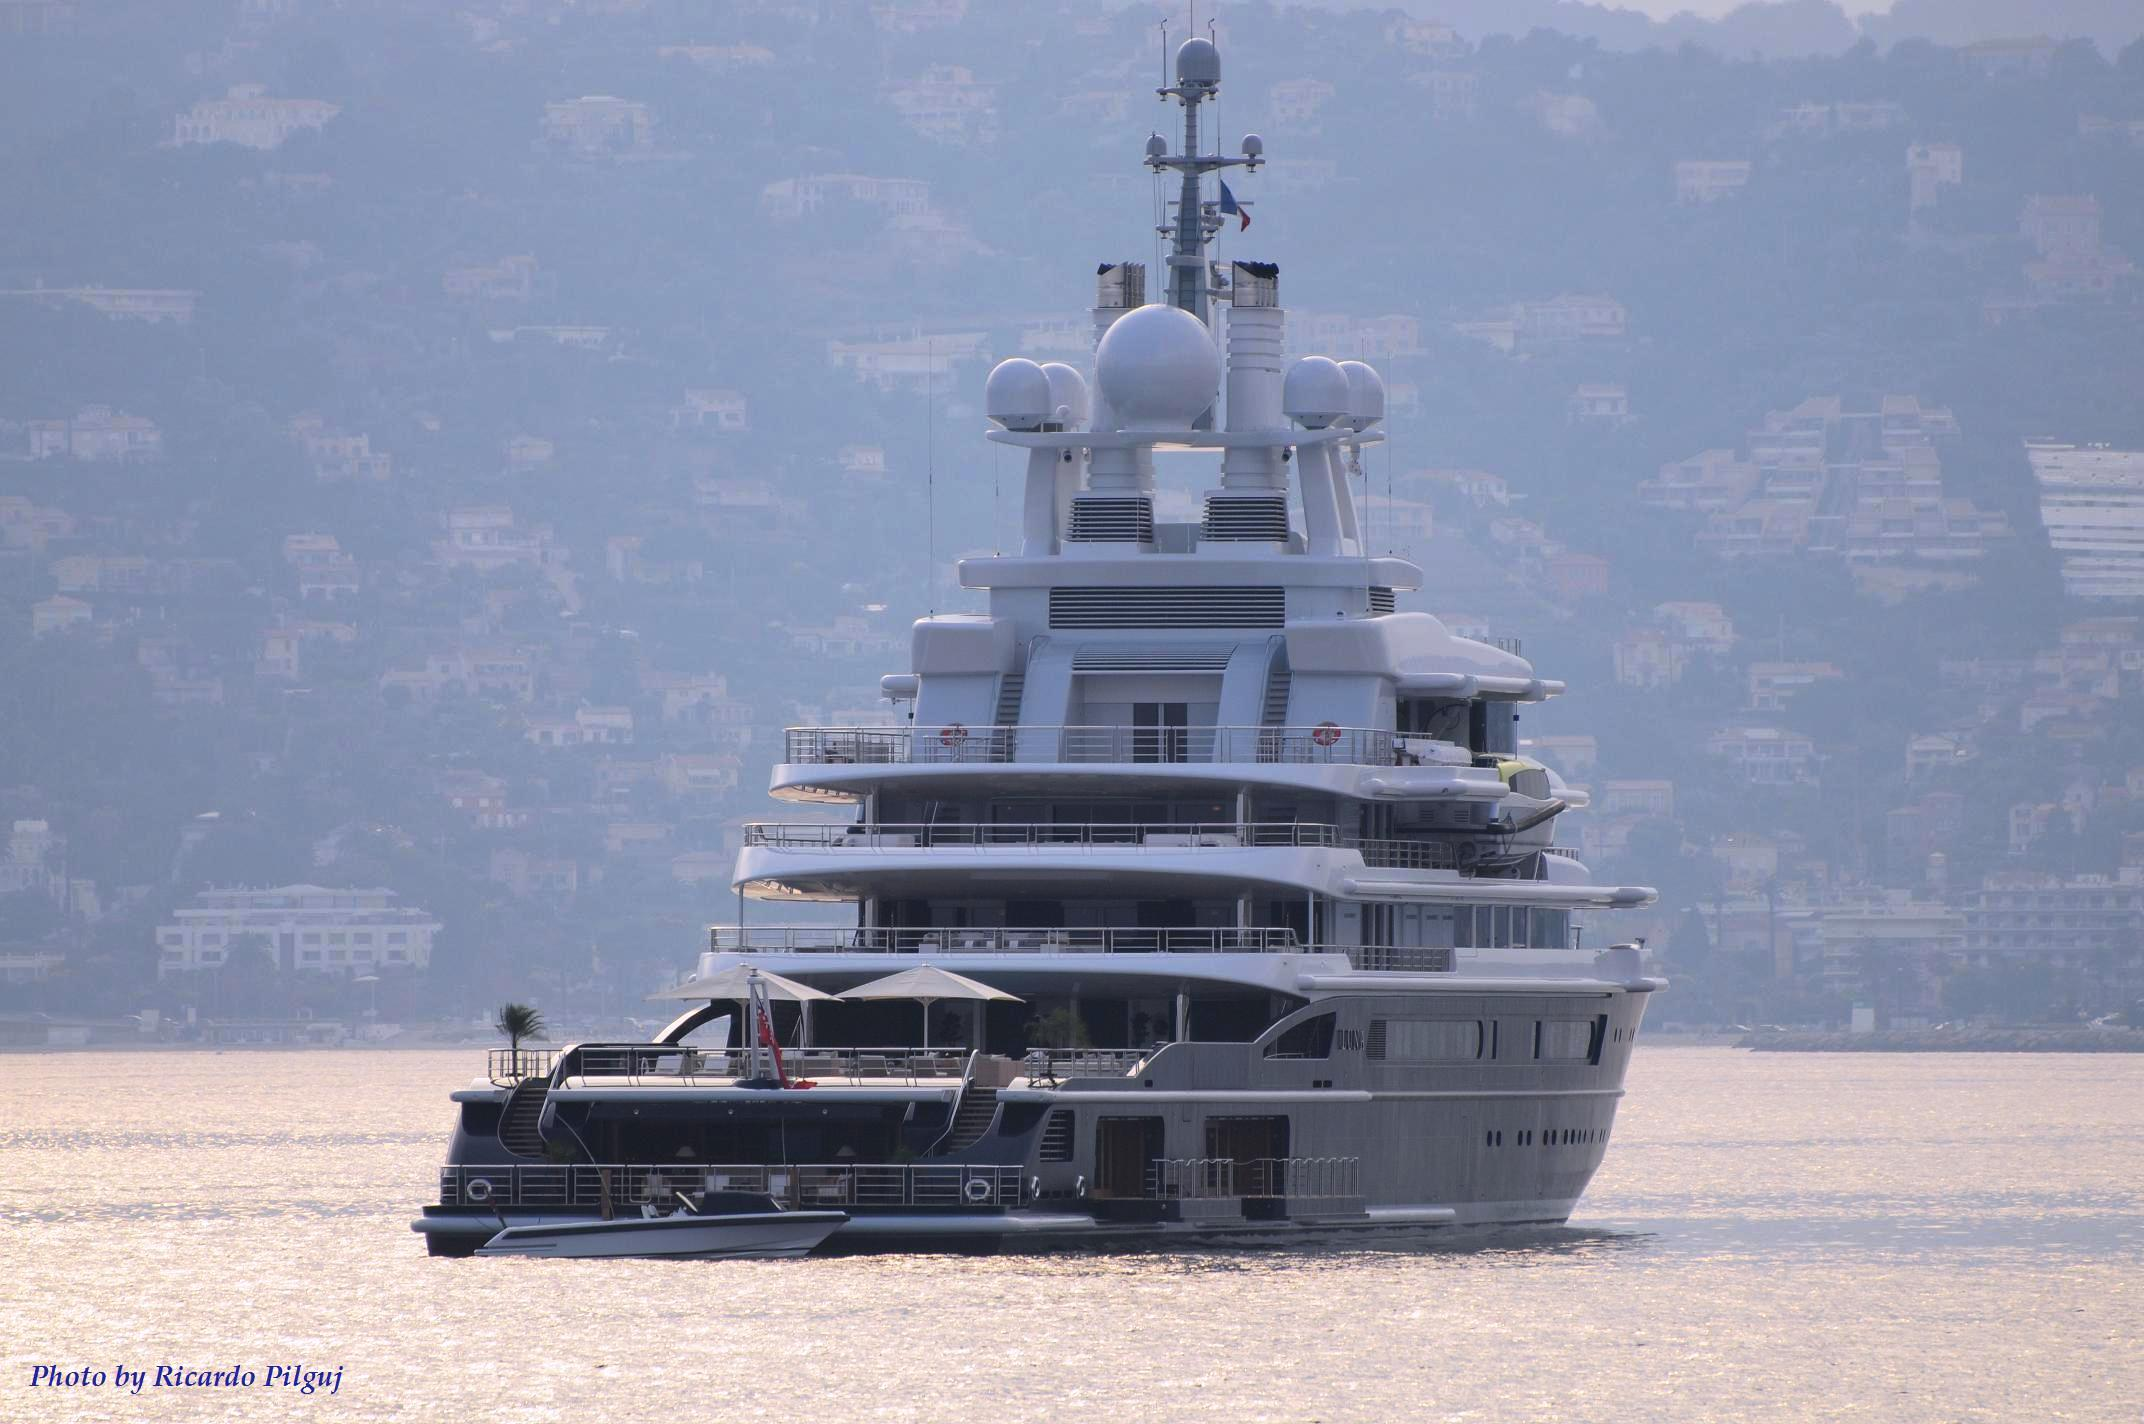 Yacht-Luna-soon-after-her-delivery-in-the-Mediterranean-This-photo-is-courtesy-of-yacht-and-ship-photographer-Ricardo-Pilguj